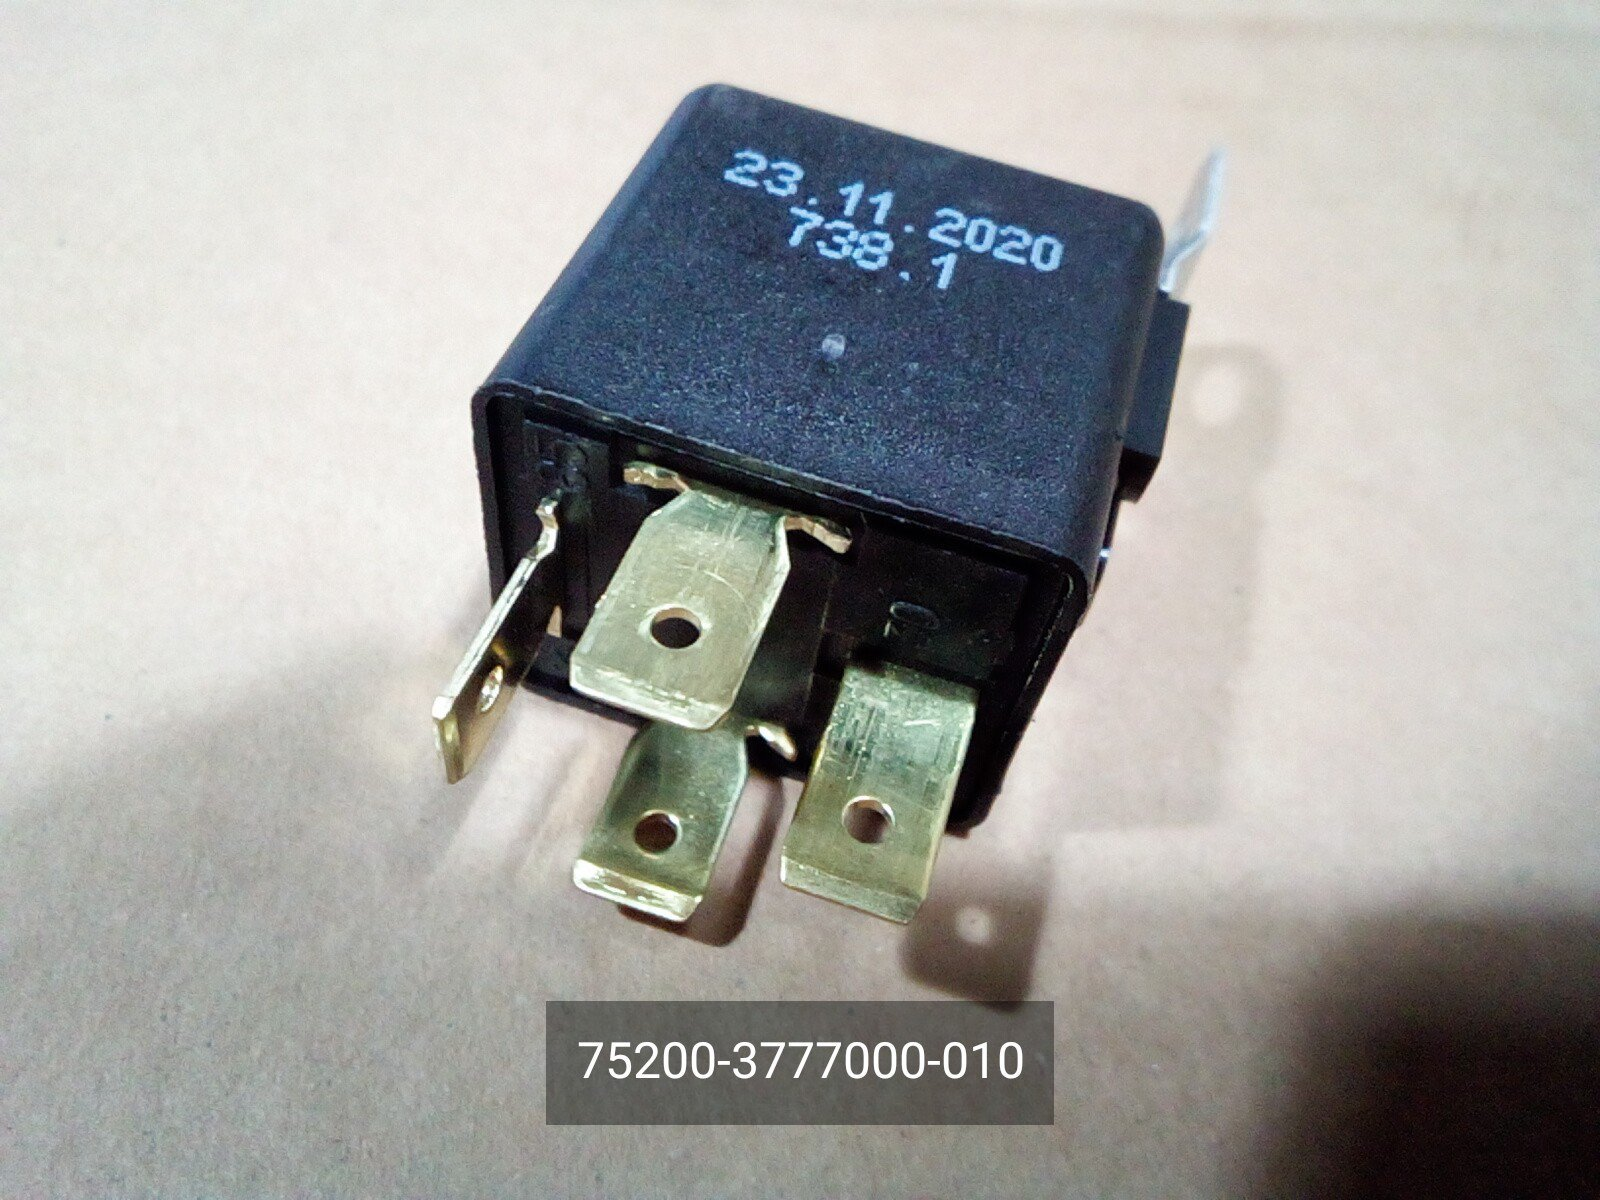 Relay electromagnetic 12V 4 pin (30a) 752.3777 10 Tu 37.469.093 2006 .752.3777.000 10 gas for gas GAZelle Business (1999